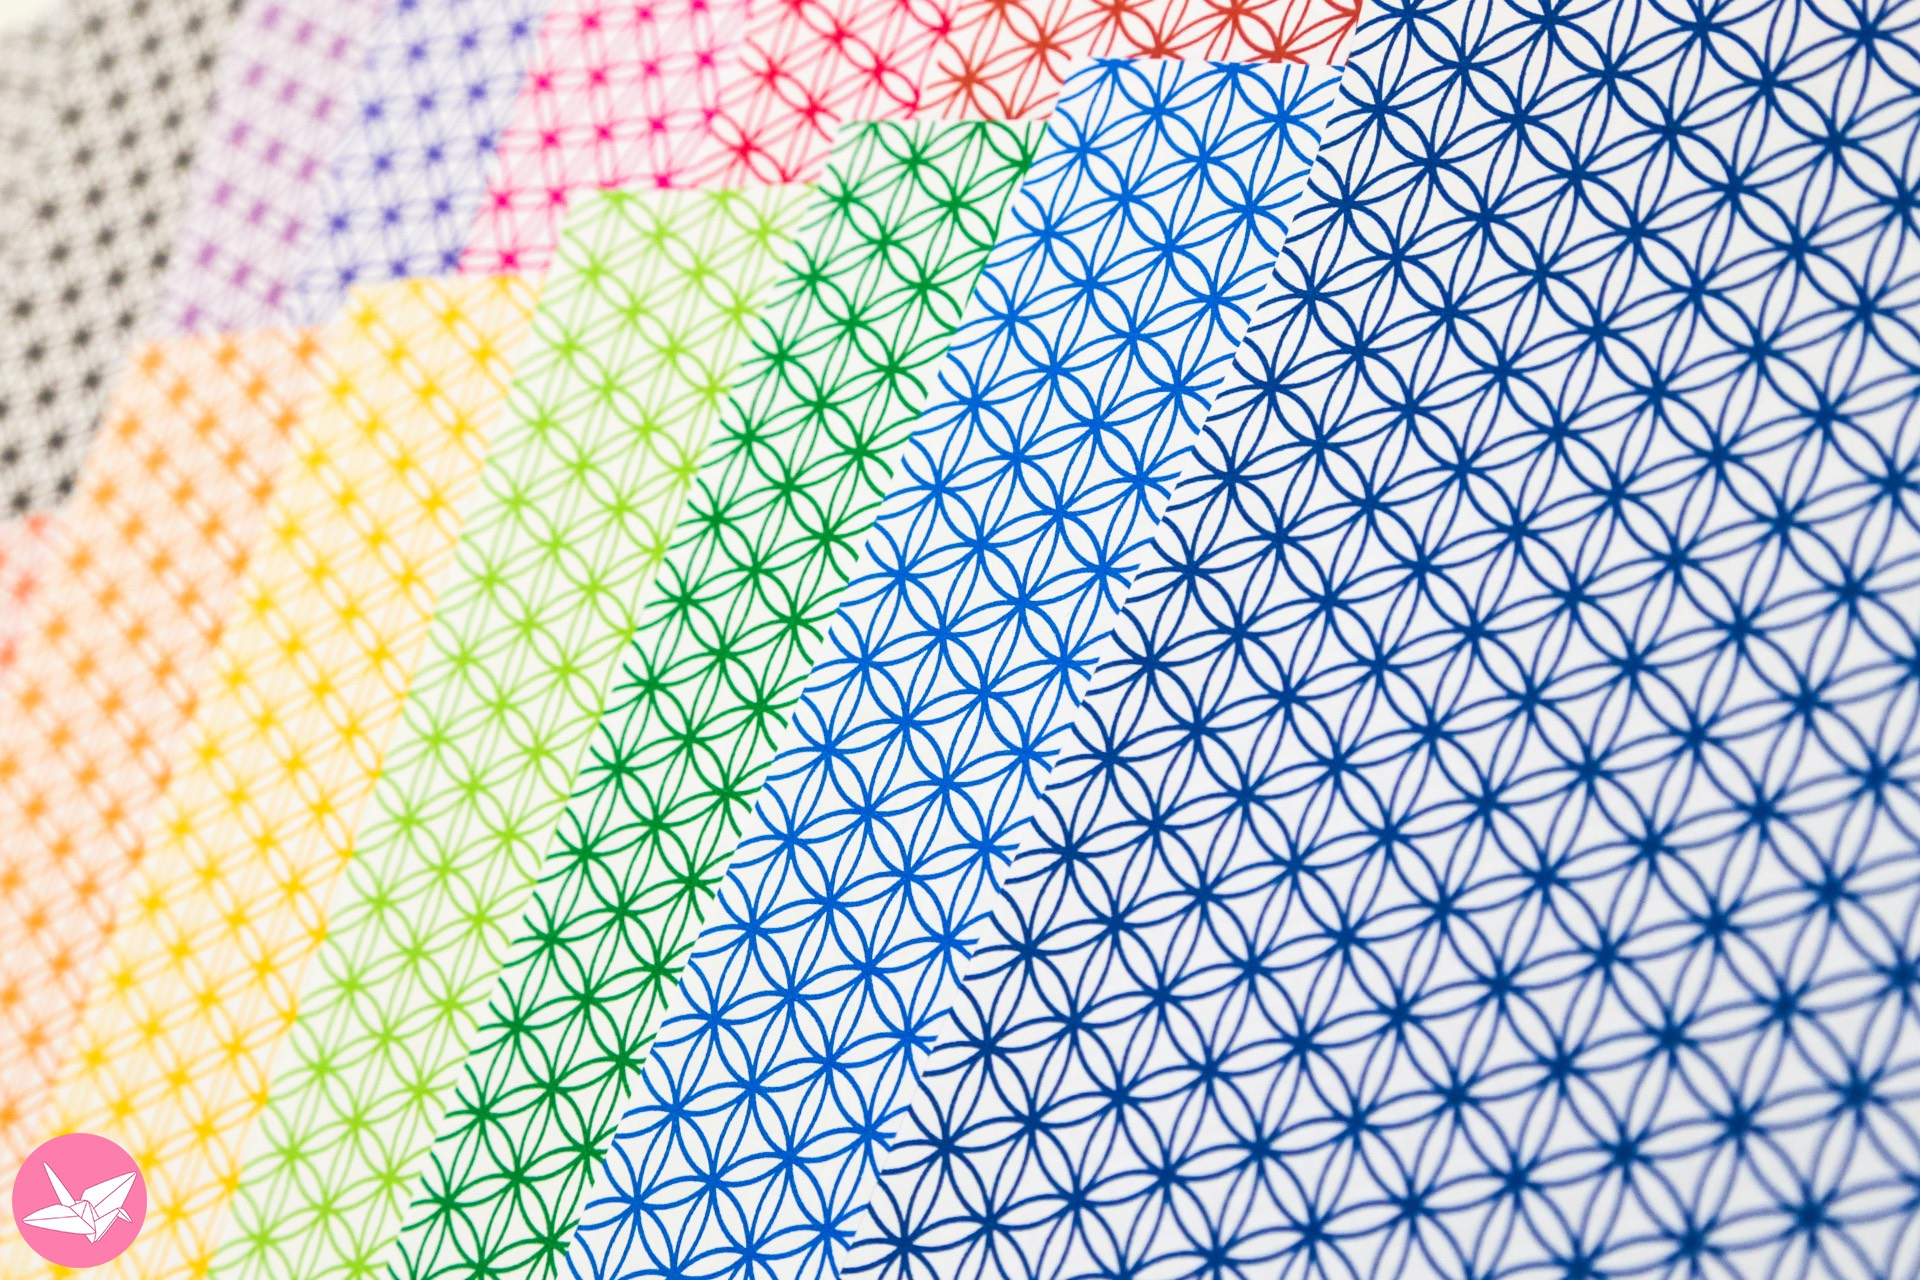 flower of life pattern papers - bright lines